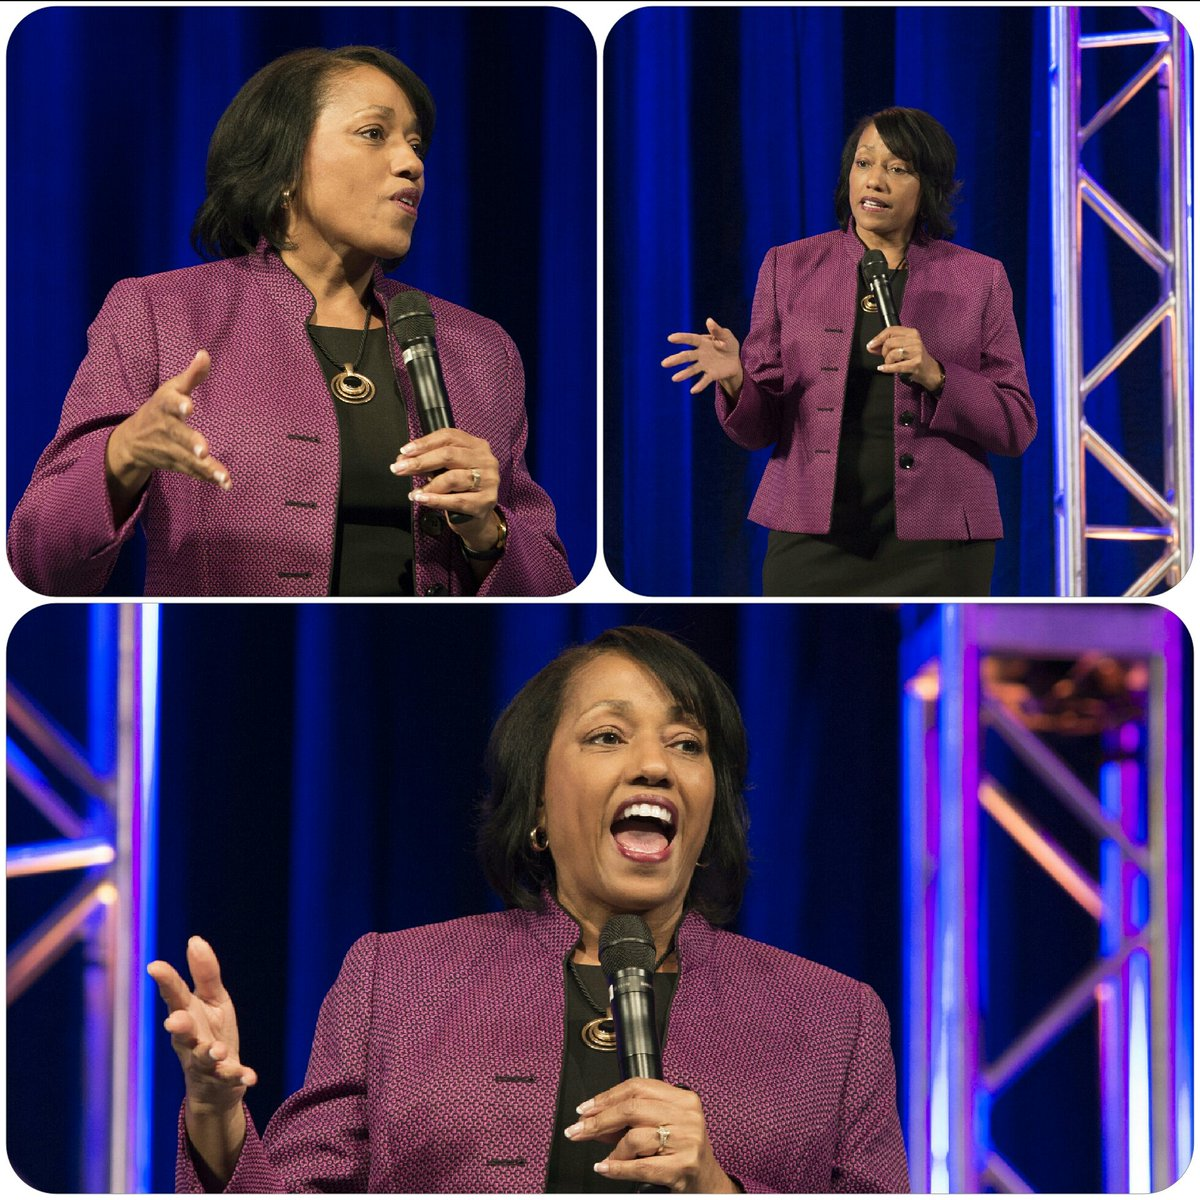 A few favorite photos from final keynote for 2016!  #casevvi #workplacecommunication  #professionalspeaker <br>http://pic.twitter.com/rBtnx3GTdw